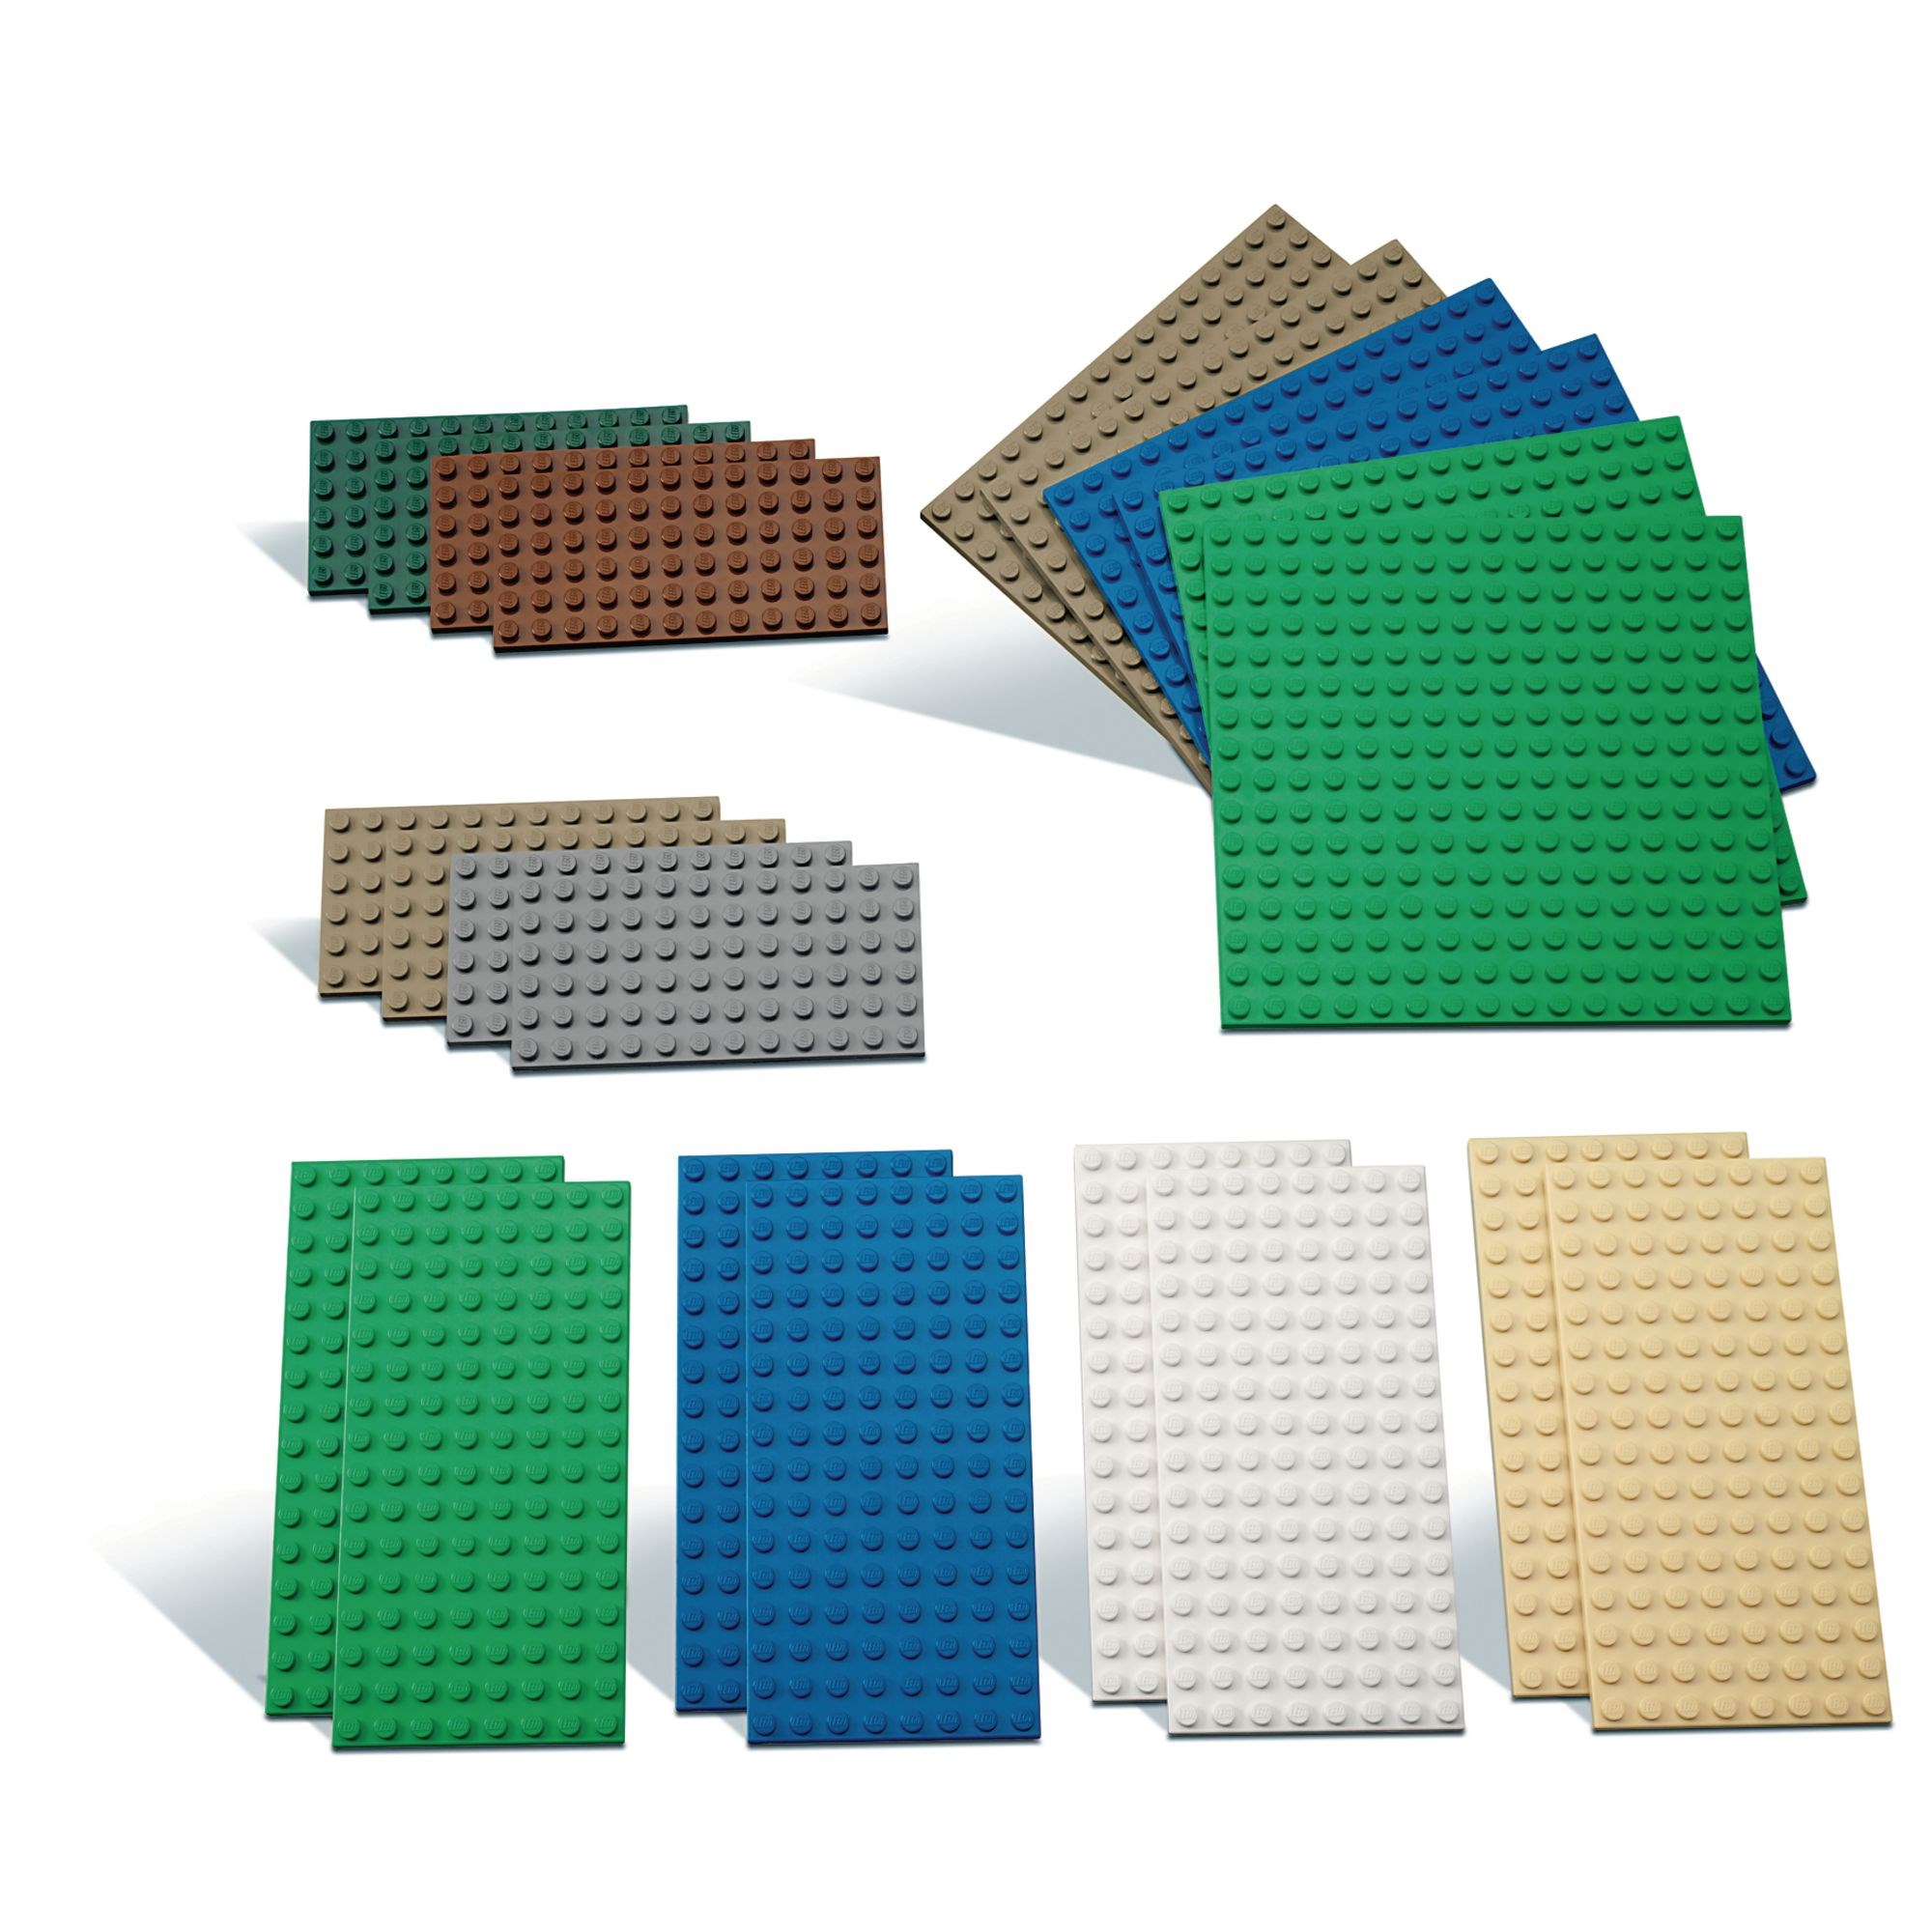 Small Lego Building Plates 9279